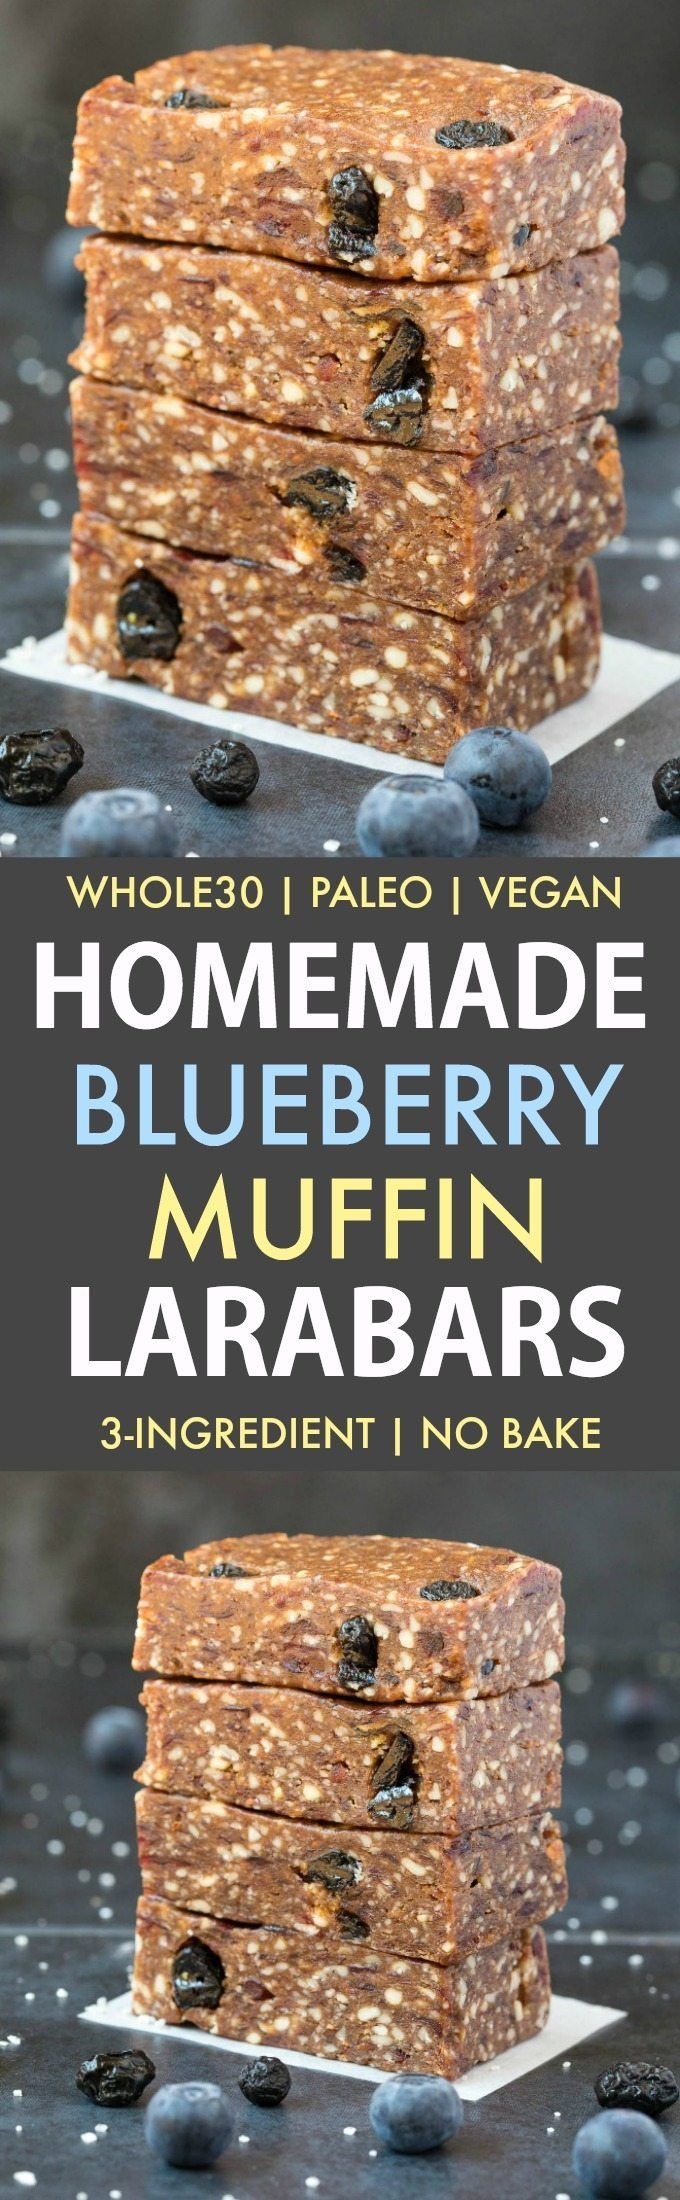 Best 25+ Homemade blueberry muffins ideas on Pinterest ...